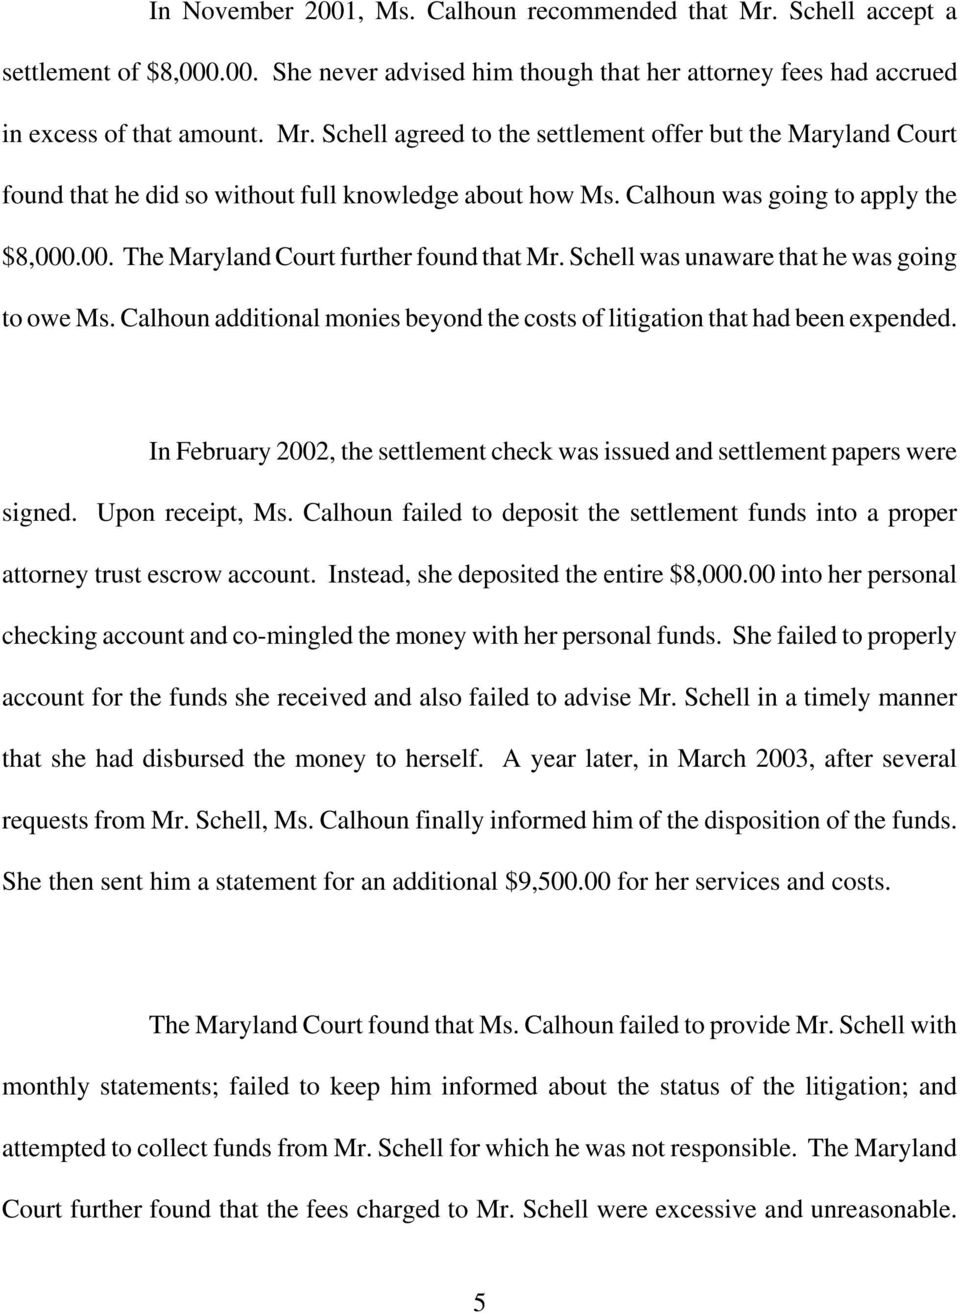 Calhoun additional monies beyond the costs of litigation that had been expended. In February 2002, the settlement check was issued and settlement papers were signed. Upon receipt, Ms.